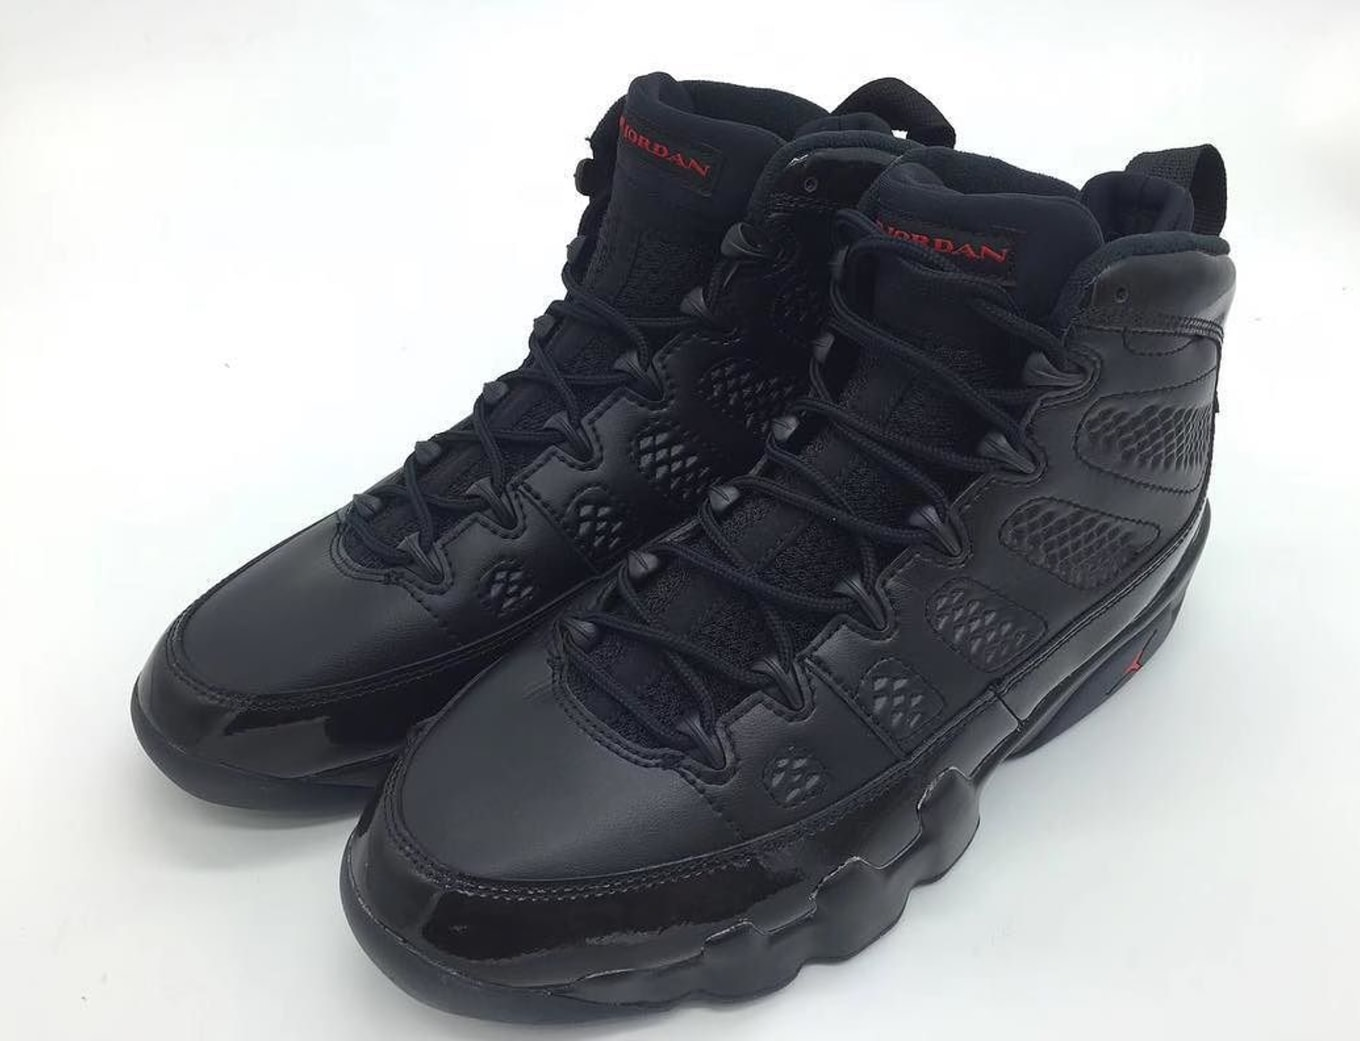 06626108a64273 Air Jordan 9 Black Anthracite Red 2018 Release Date 302370-014 ...